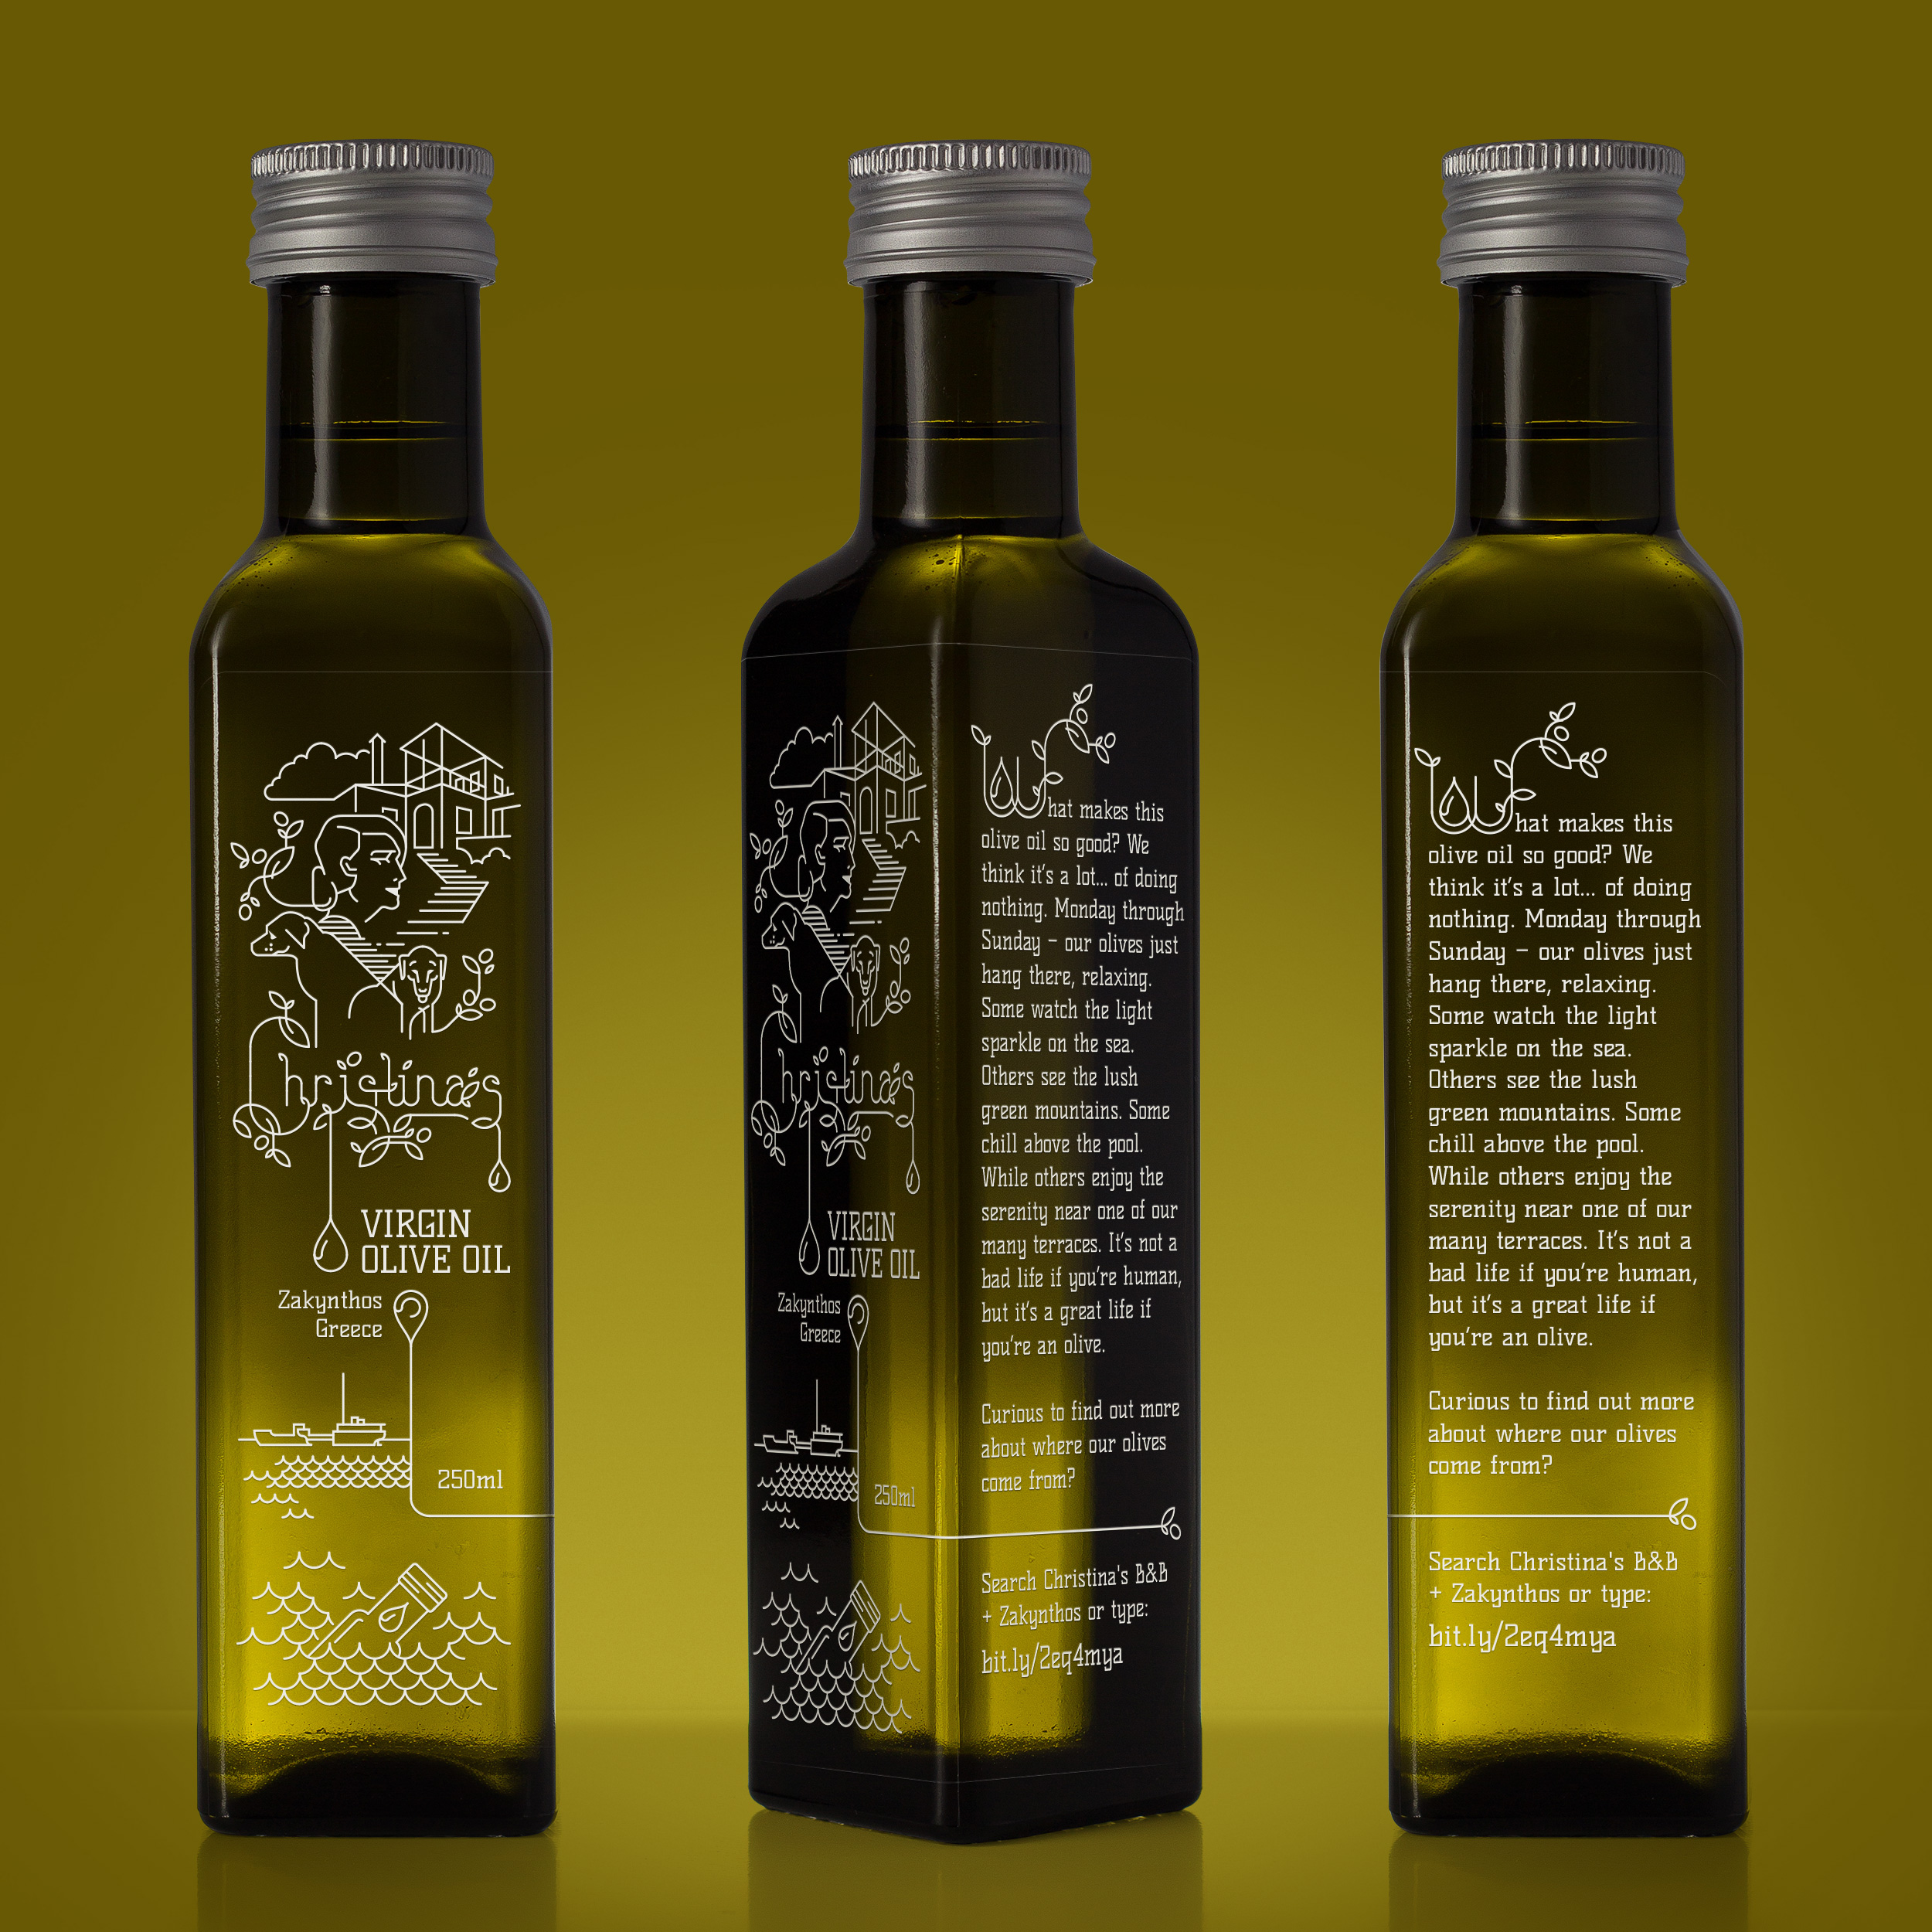 illustration_andre_levy_zhion_vector_outline_olive_oil_bottle_label_message_zakynthos_bnb_project_david_simons_1.jpg